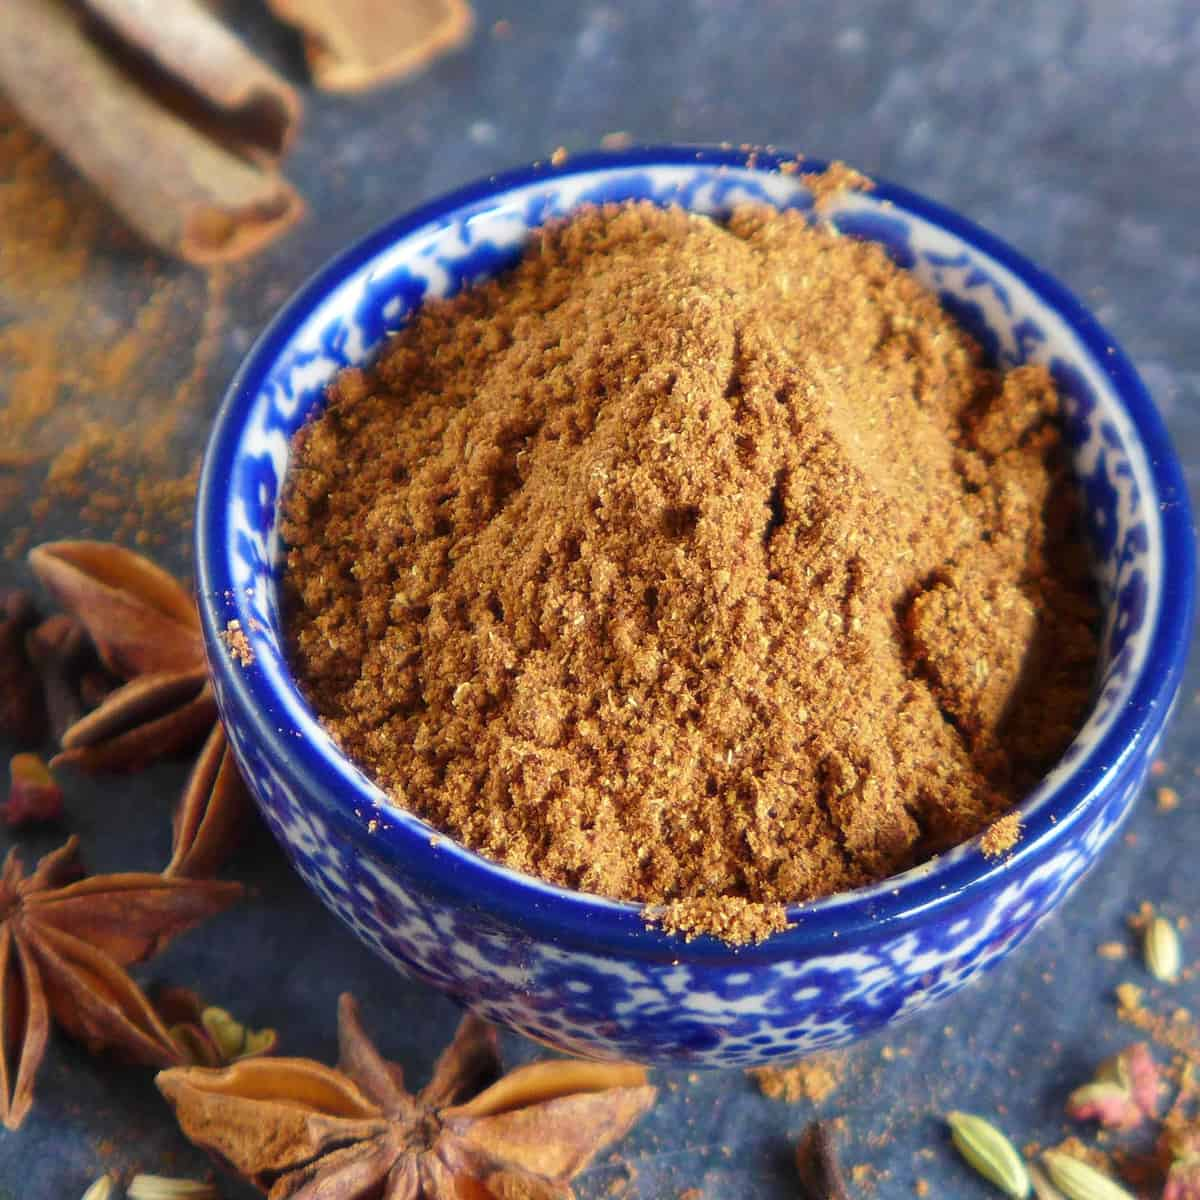 Homemade five spice powder in a bowl